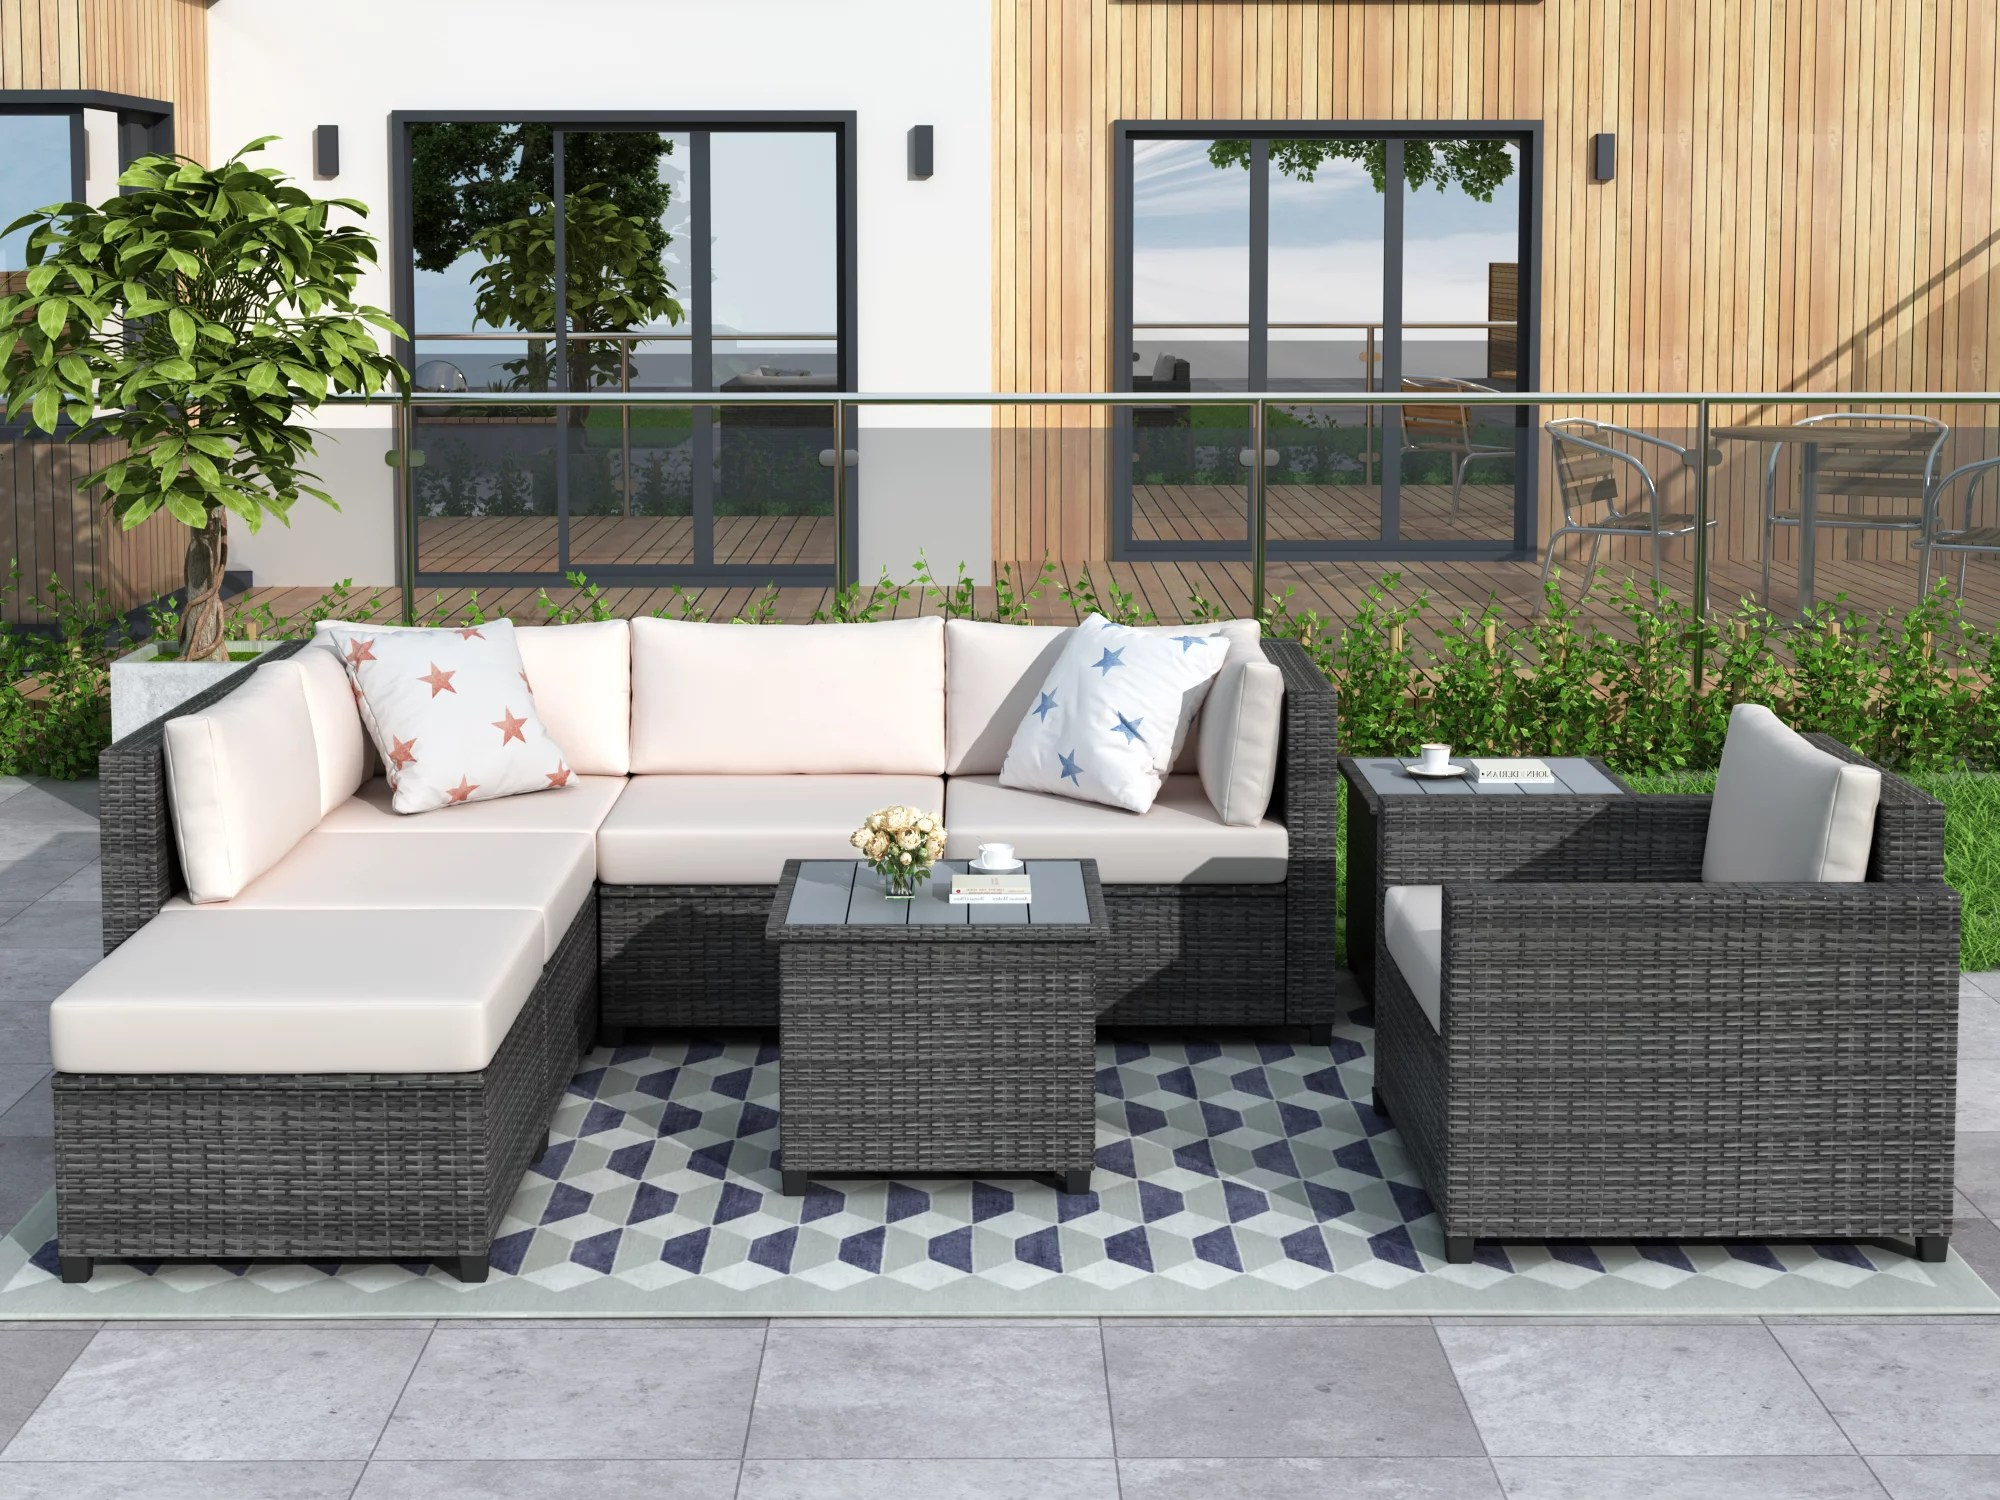 outdoor patio sectional sofa set 8 piece patio furniture set with 5 pe wicker sofas ottoman 2 coffee table all weather outdoor conversation set